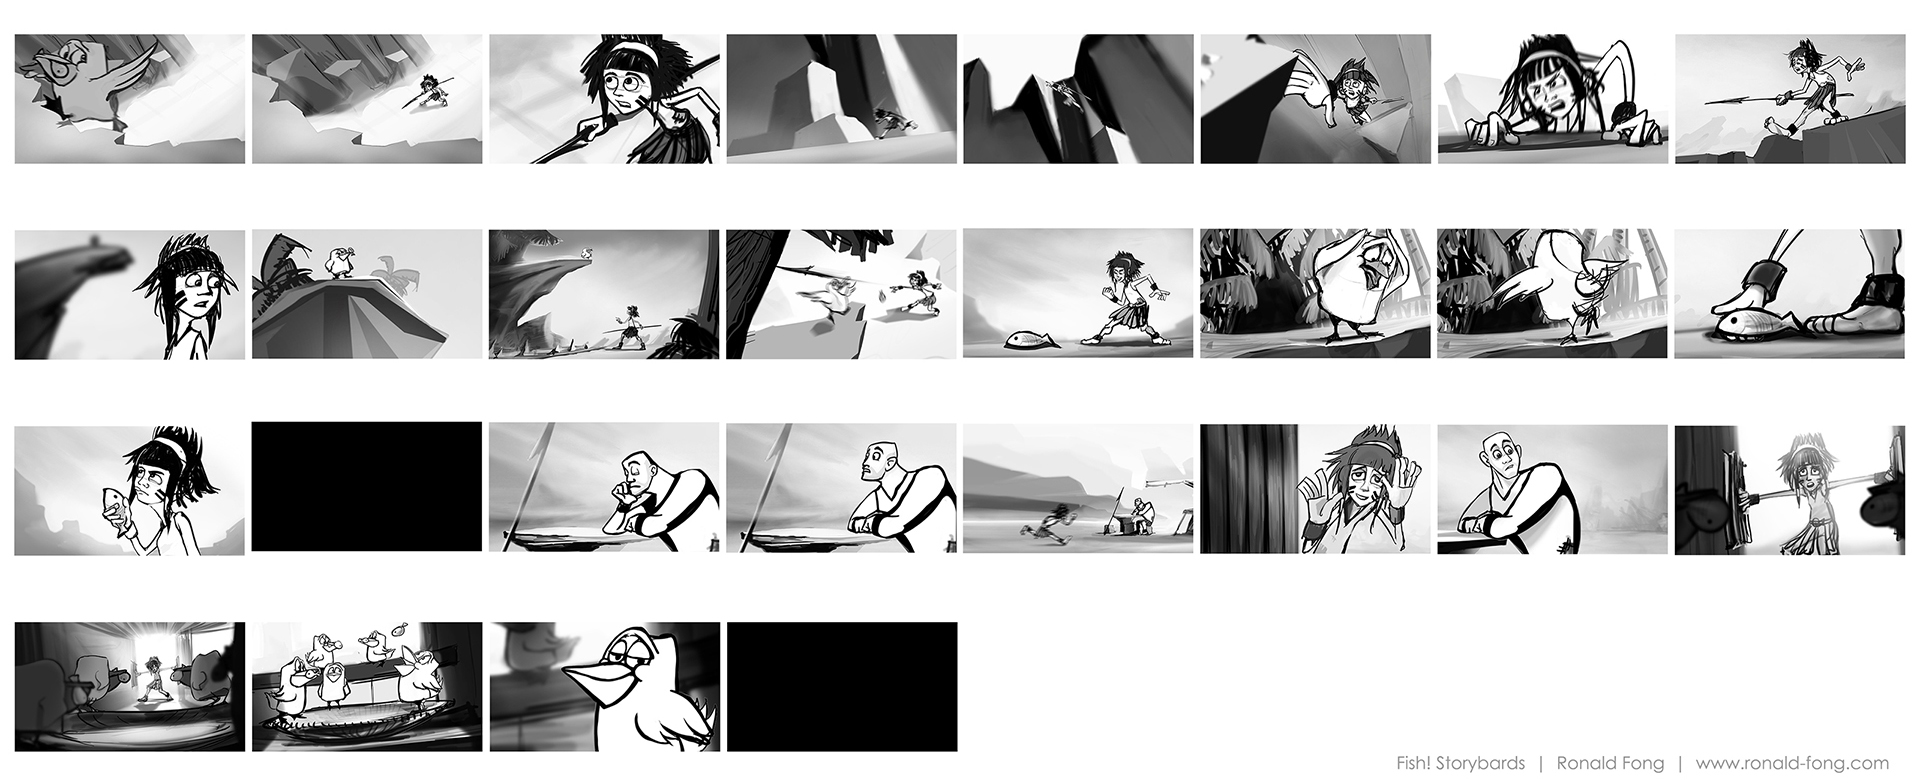 3D Animation Short Film Storyboards. PreviousNext